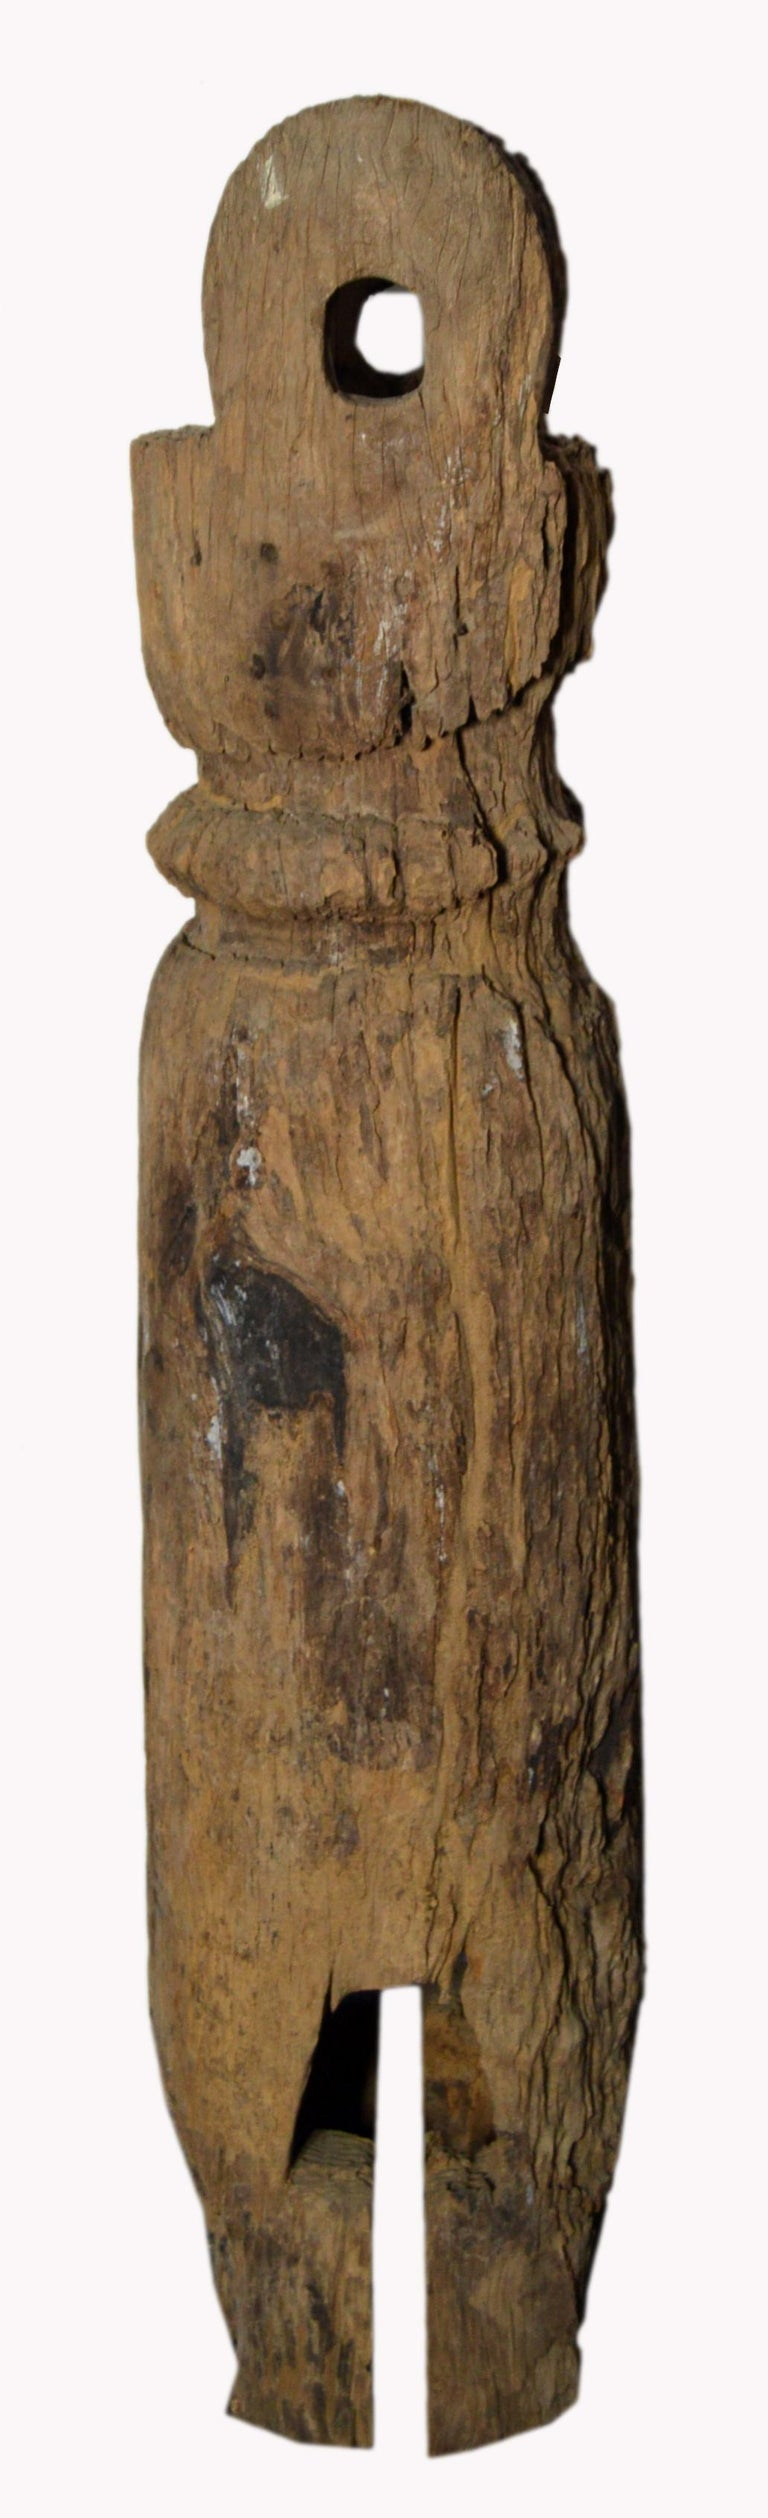 Antique Rustic Hand-Carved 19th Century Northern Thai Cylindrical Pole Sculpture For Sale 2